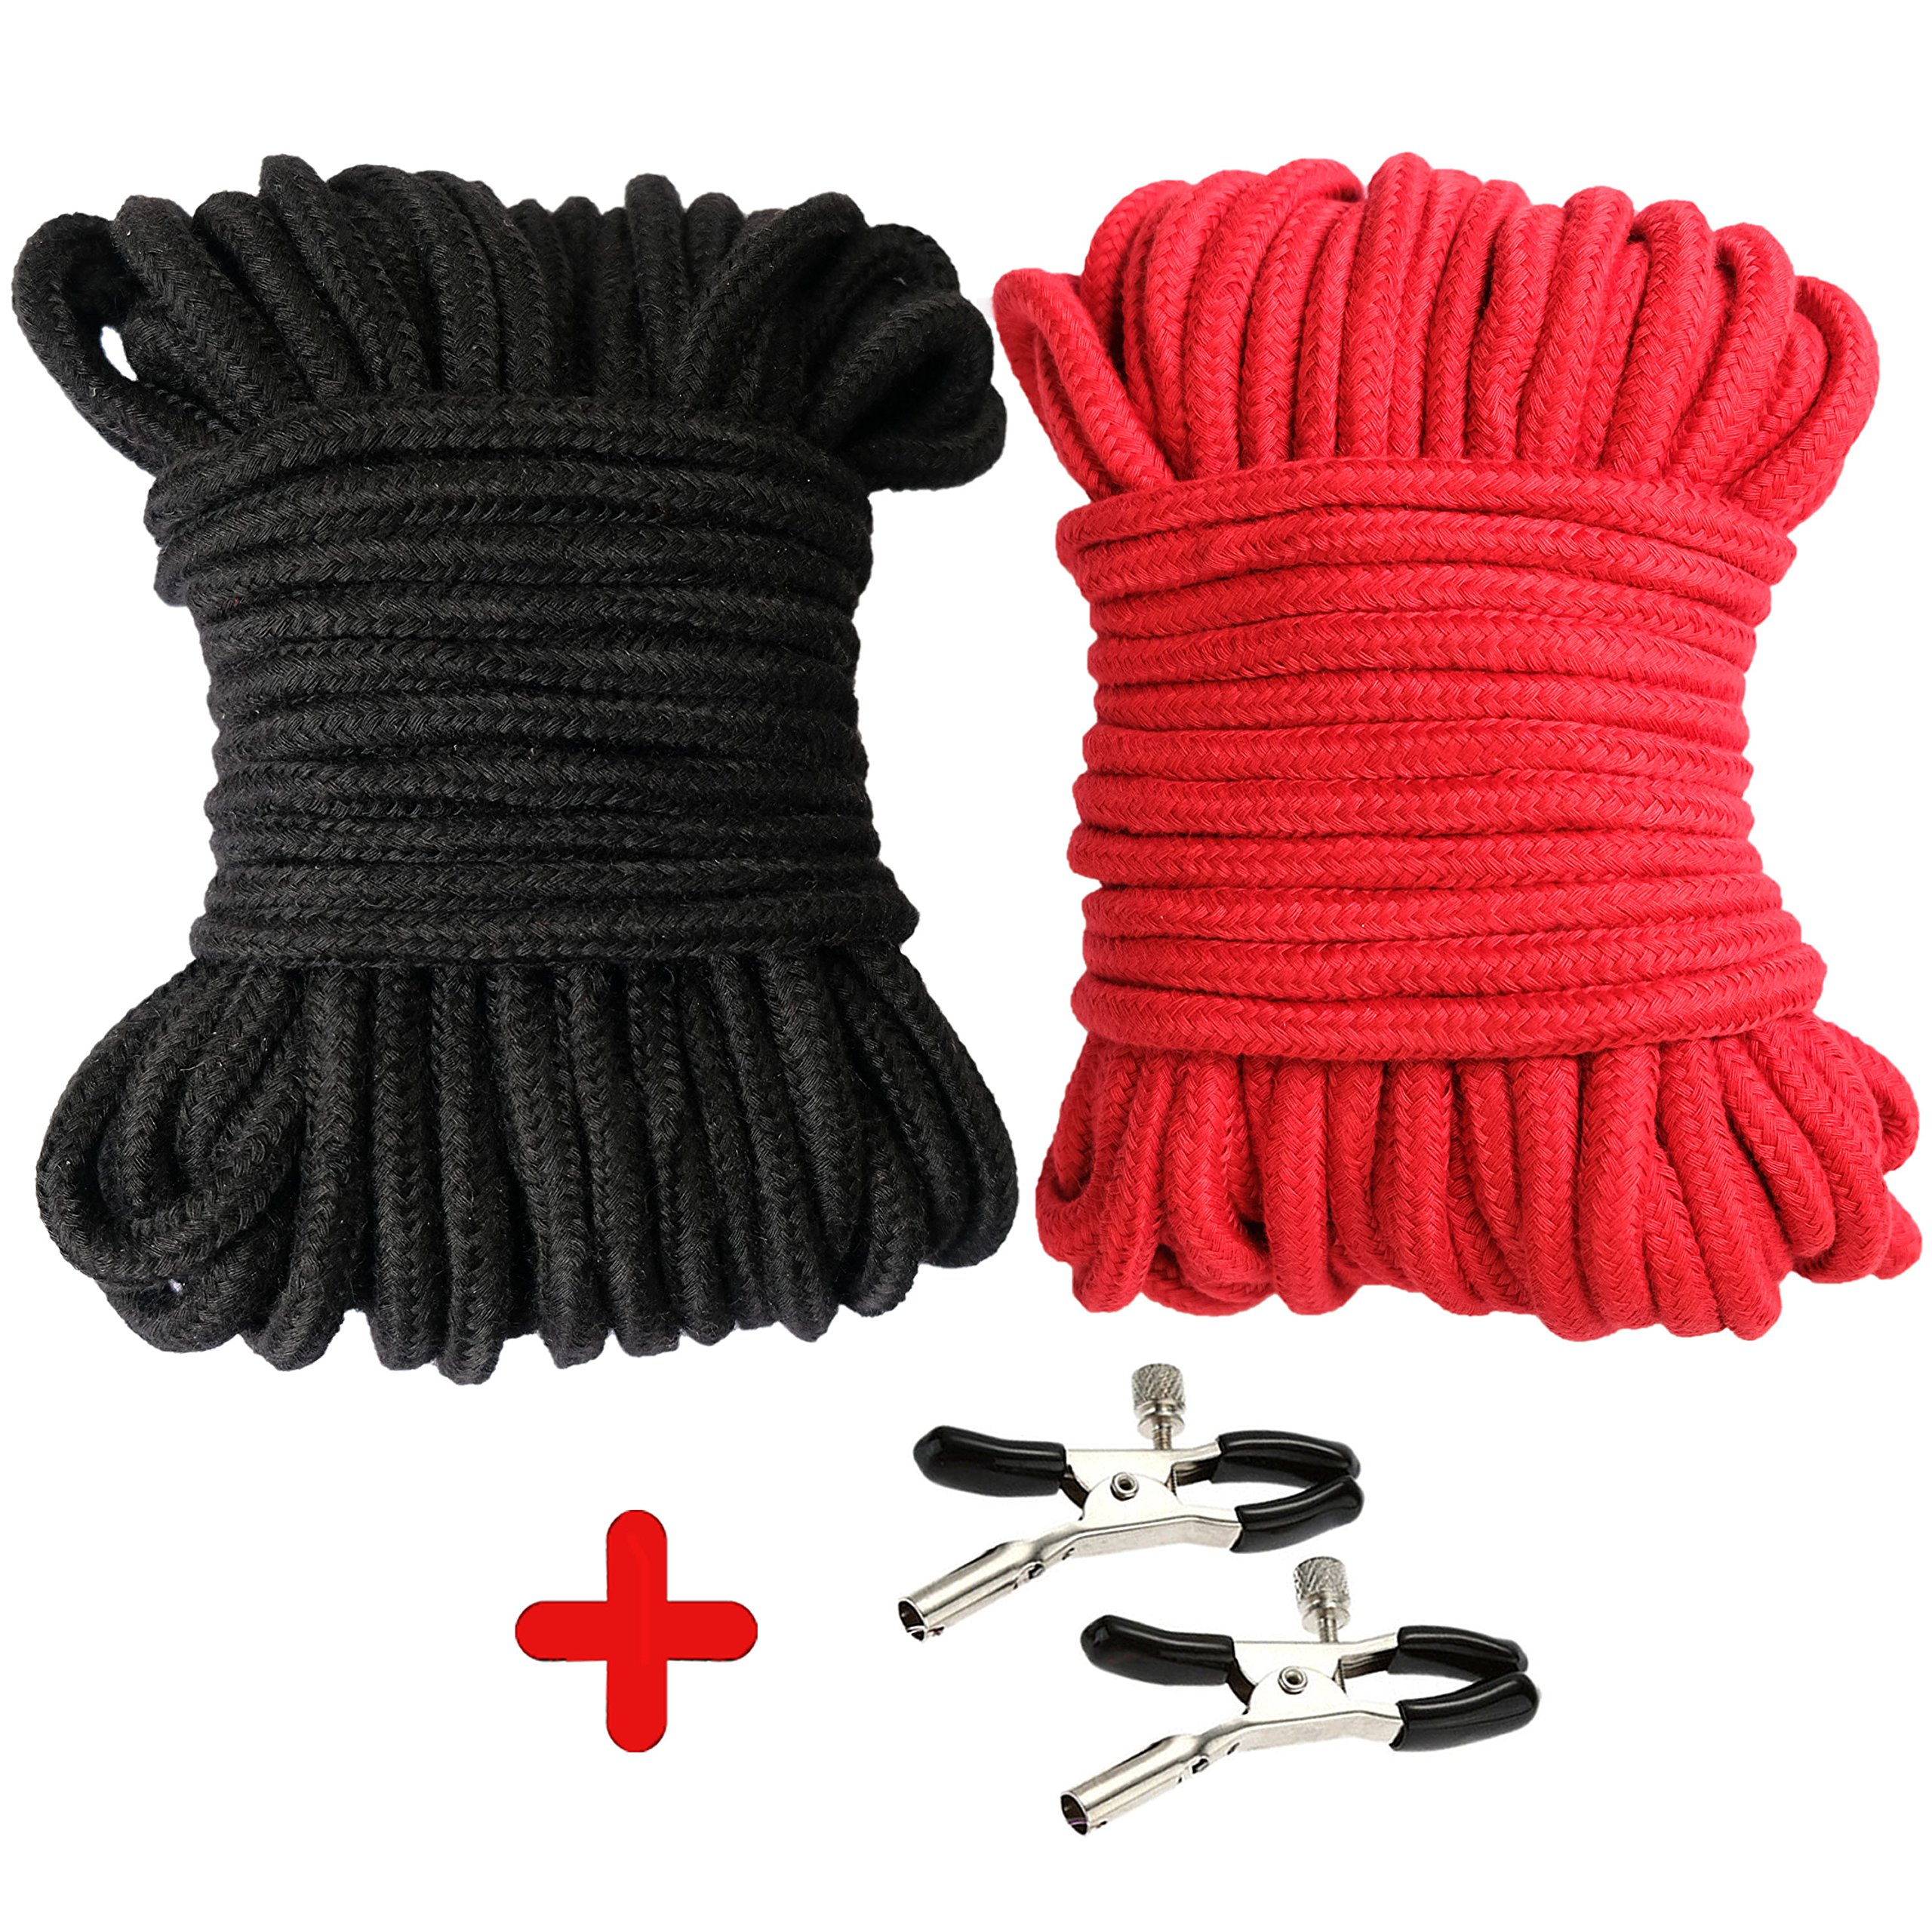 SENSILAND Cotton Rope for All Purposes – Pack of 2, Black & Red, 32 Feet Length each Piece – 64 Feet in Total, 1/3-inch Diameter – Easy to Tie and Untie Knots + 2 Multi-function Clamps